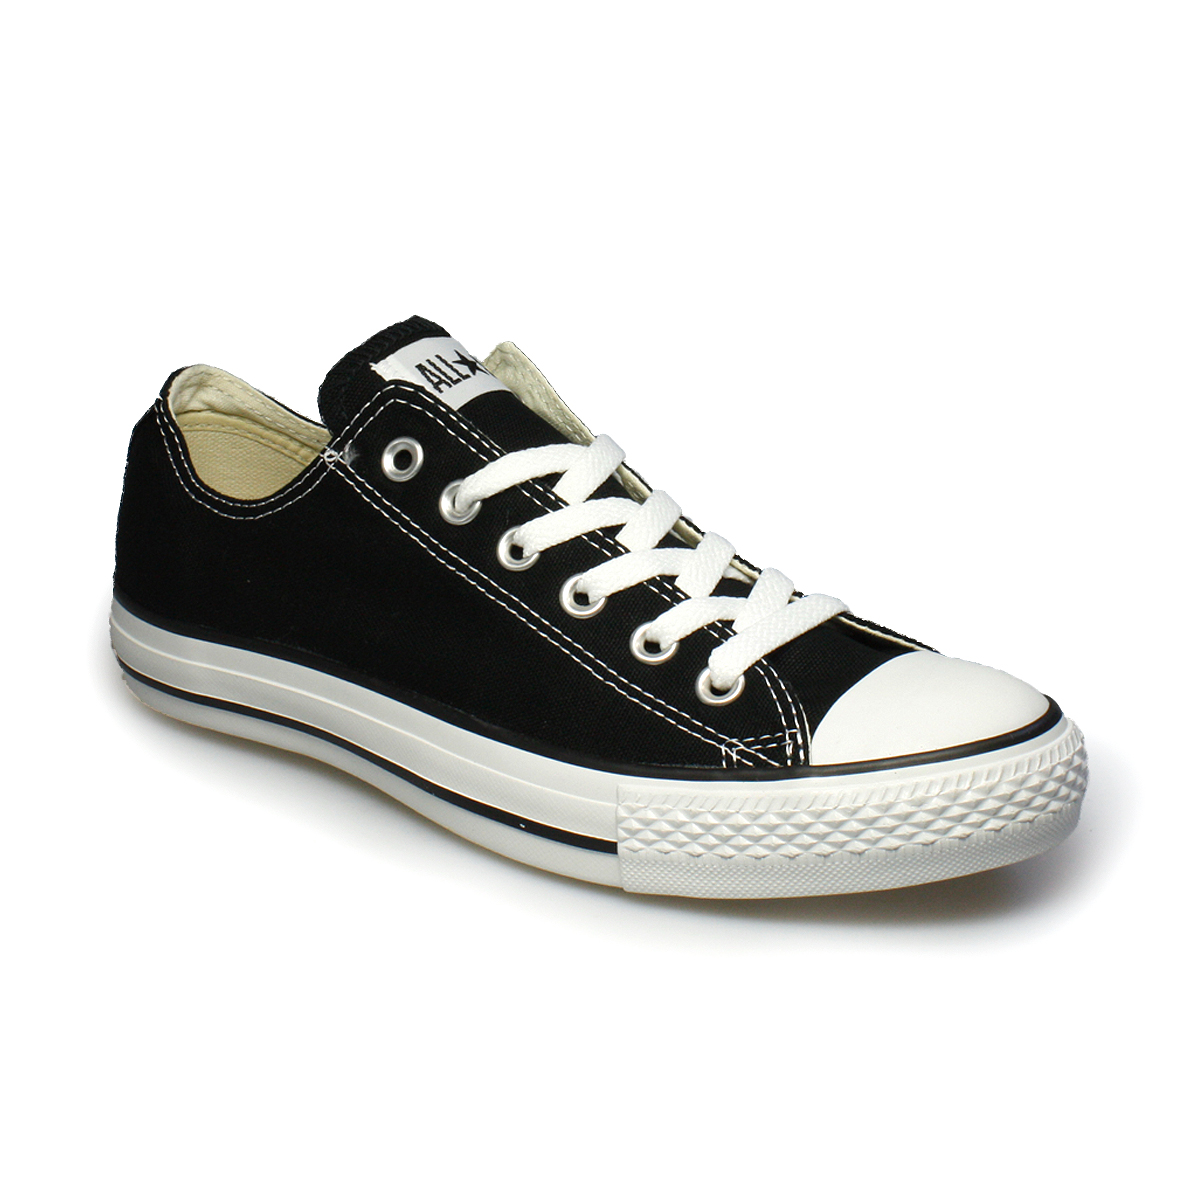 Converse Shoes All Star Black